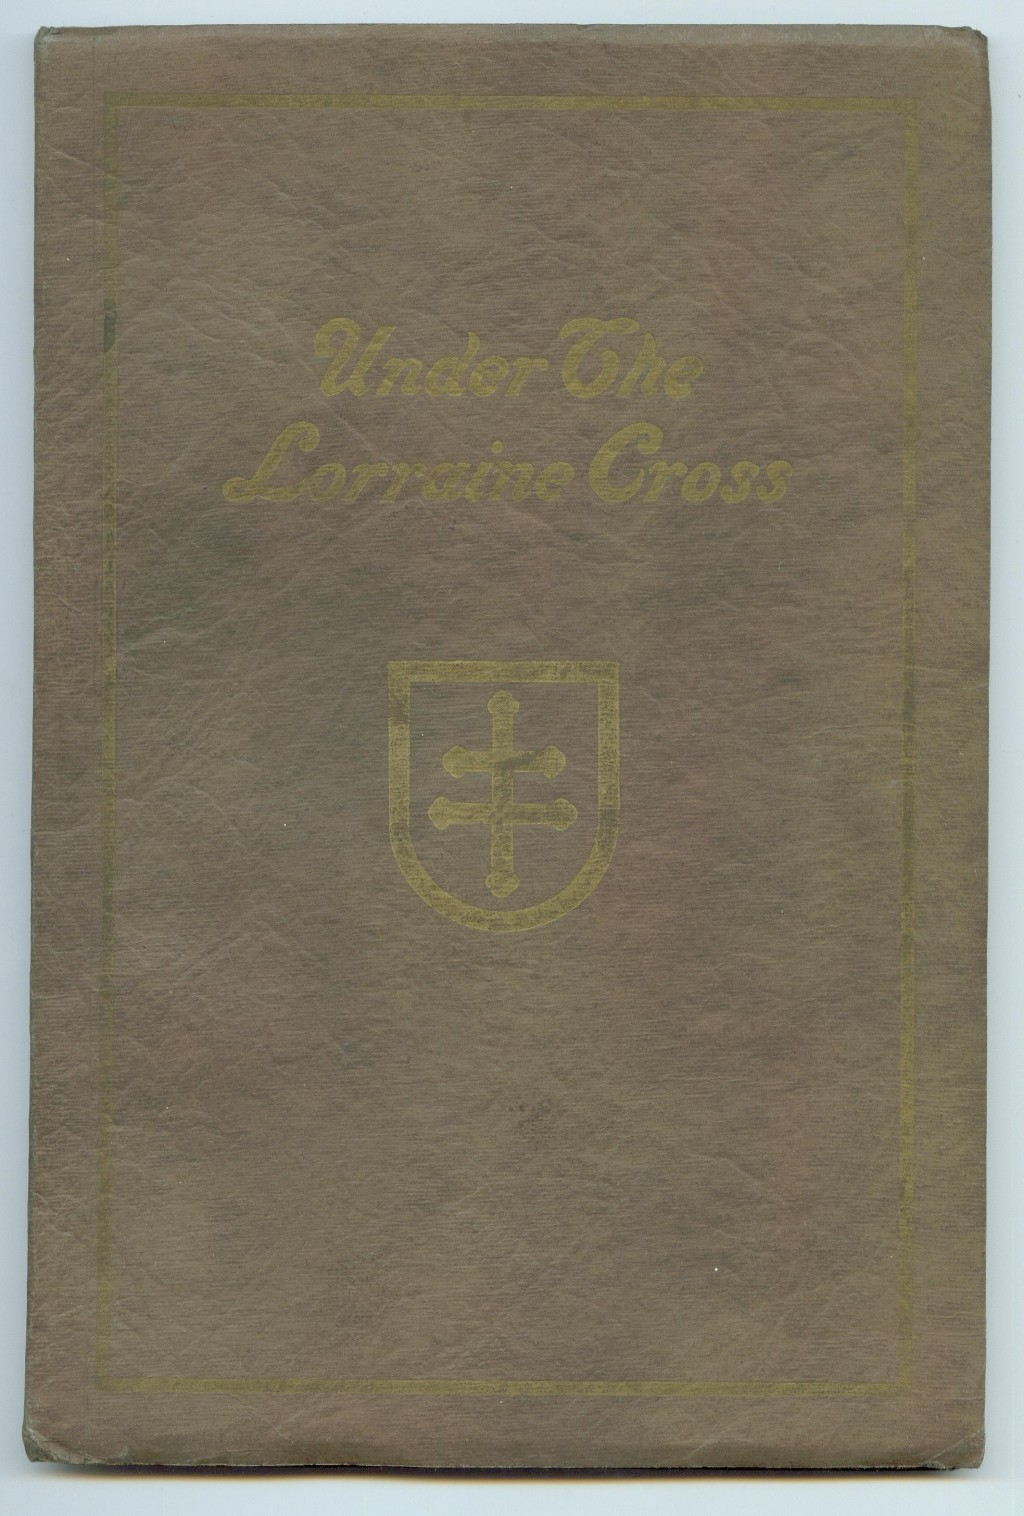 Veterans 314th Infantry Regiment A.E.F. - Under The Lorraine Cross - book by Arthur H. Joel - 1921 - Cover